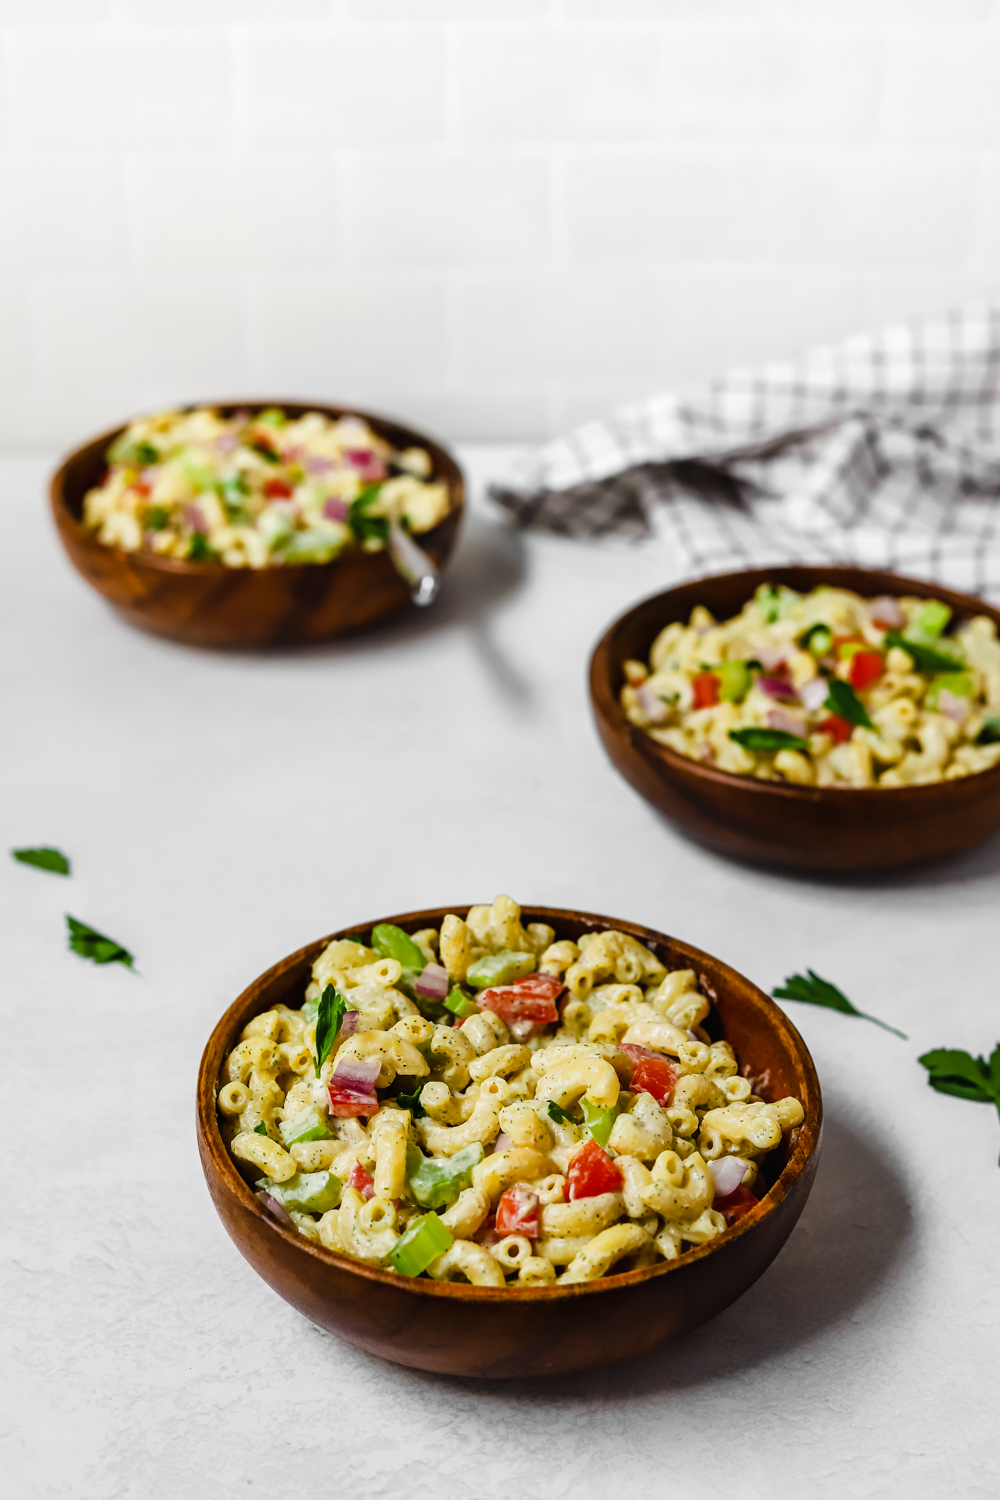 Healthy vegan macaroni salad in a small wooden bowl.